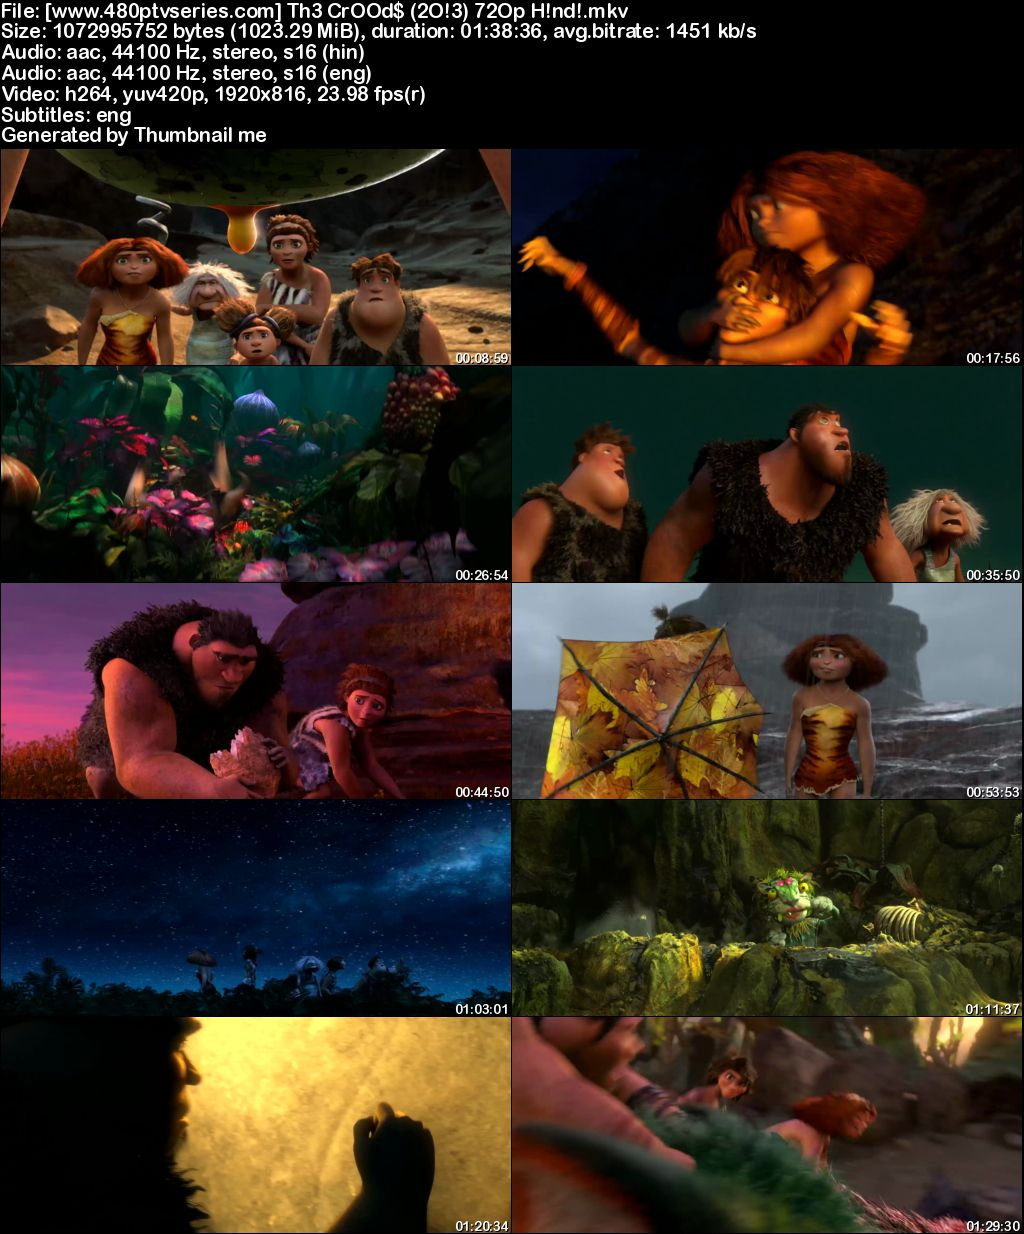 Watch Online Free The Croods (2013) Full Hindi Dual Audio Movie Download 480p 720p Bluray